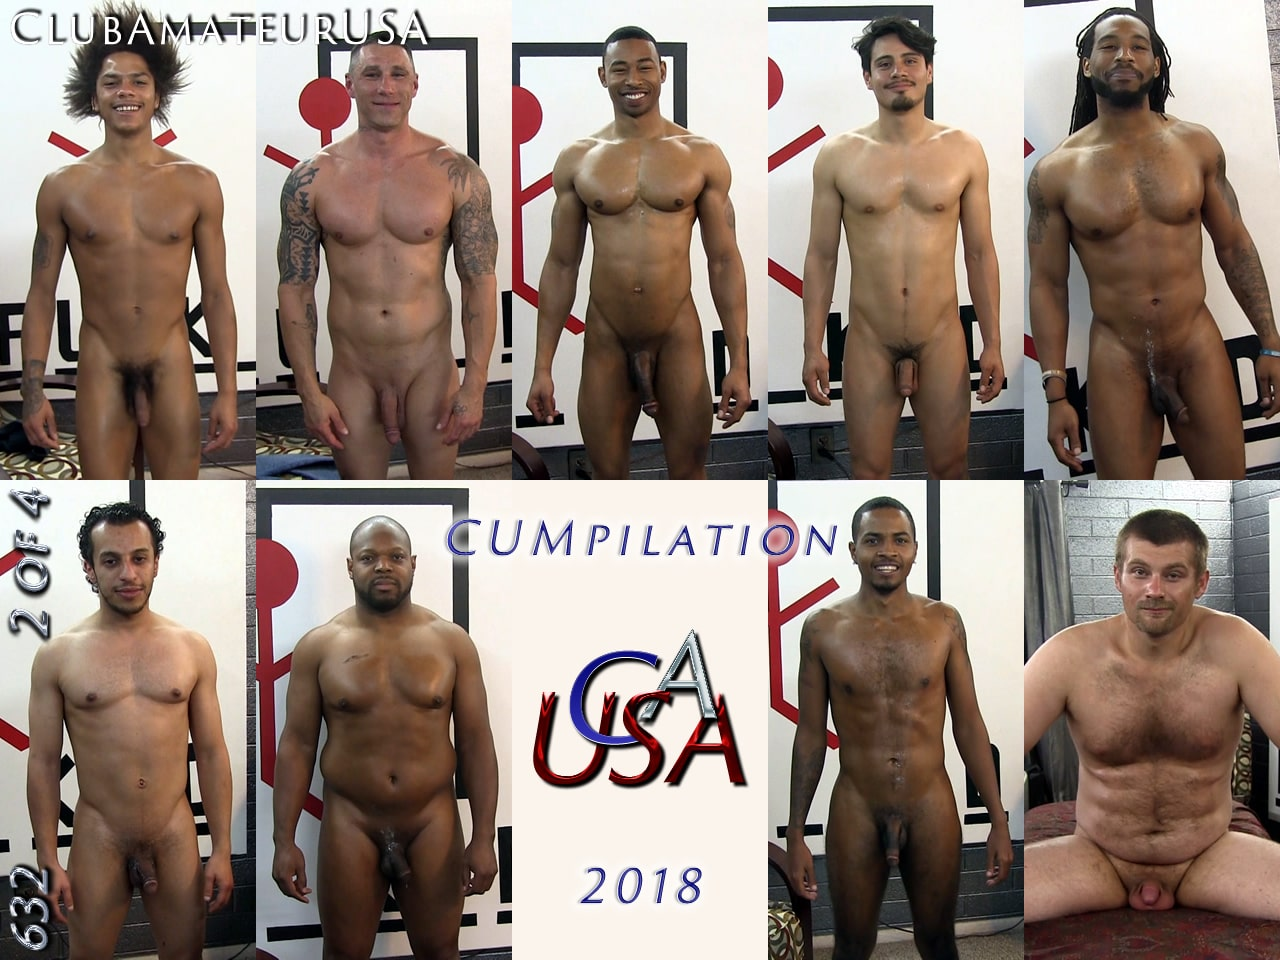 CUMpilation 2018 - 2 of 4 - ClubAmateurUSA Country flag icons